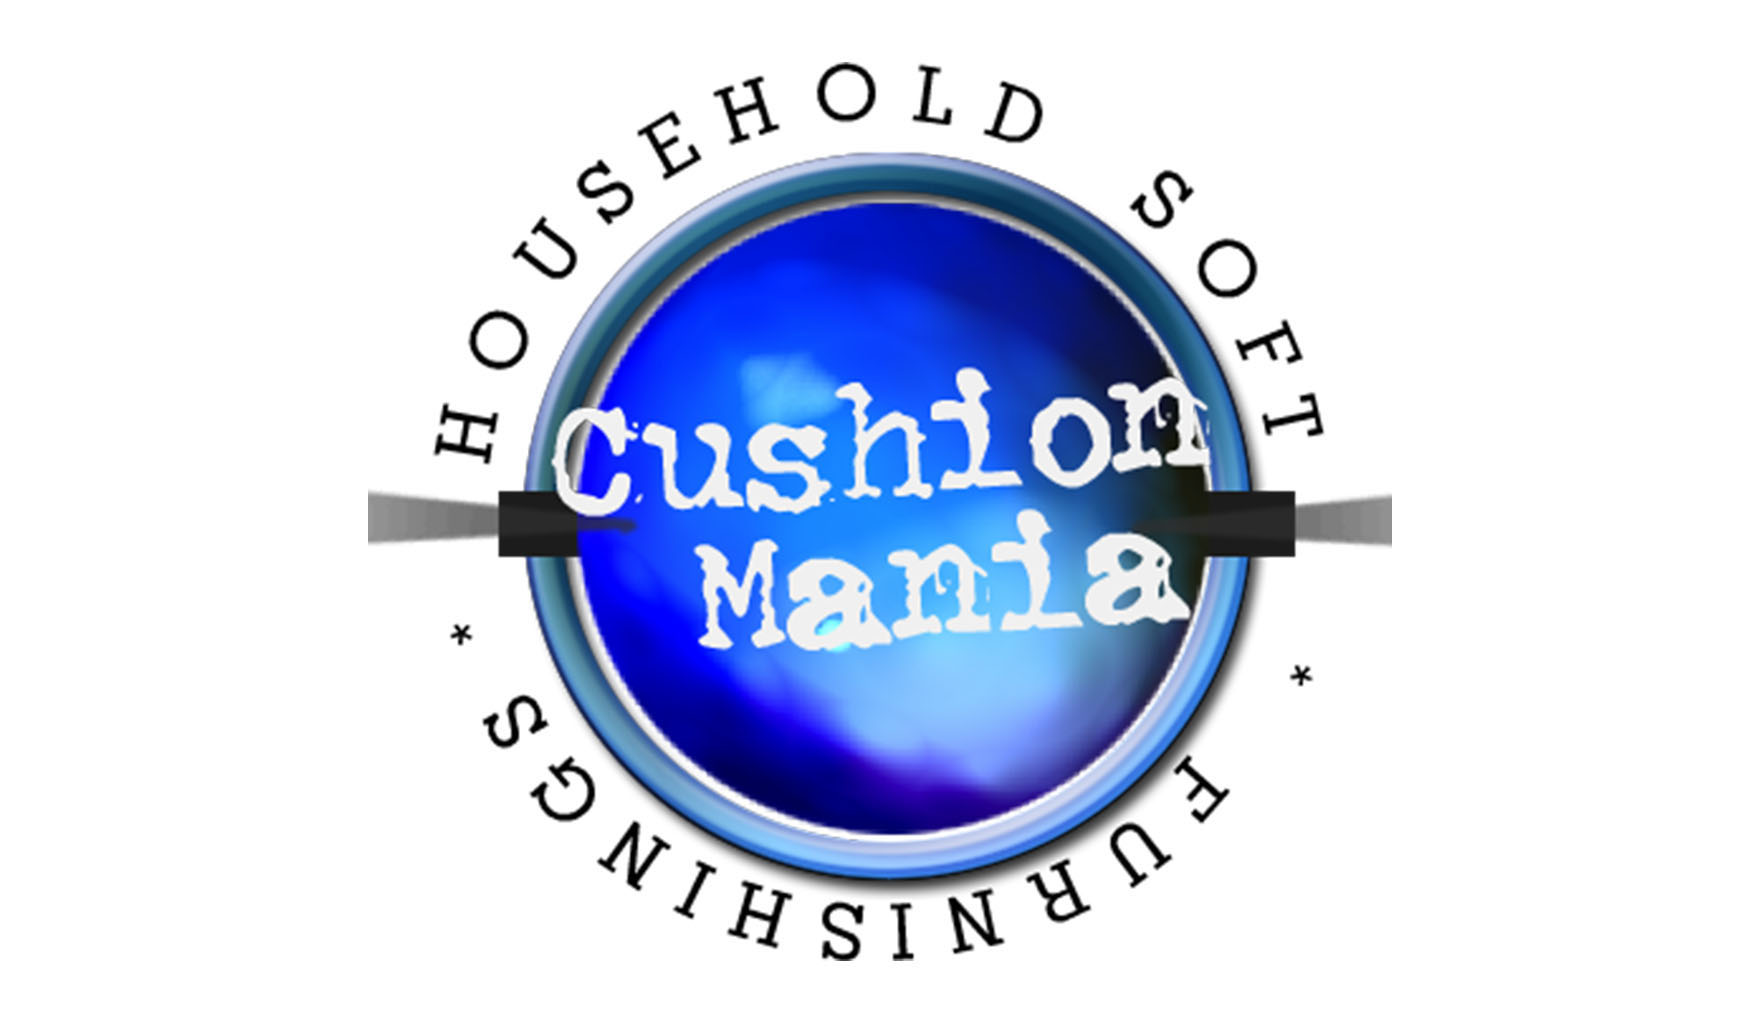 All products by cushion mania